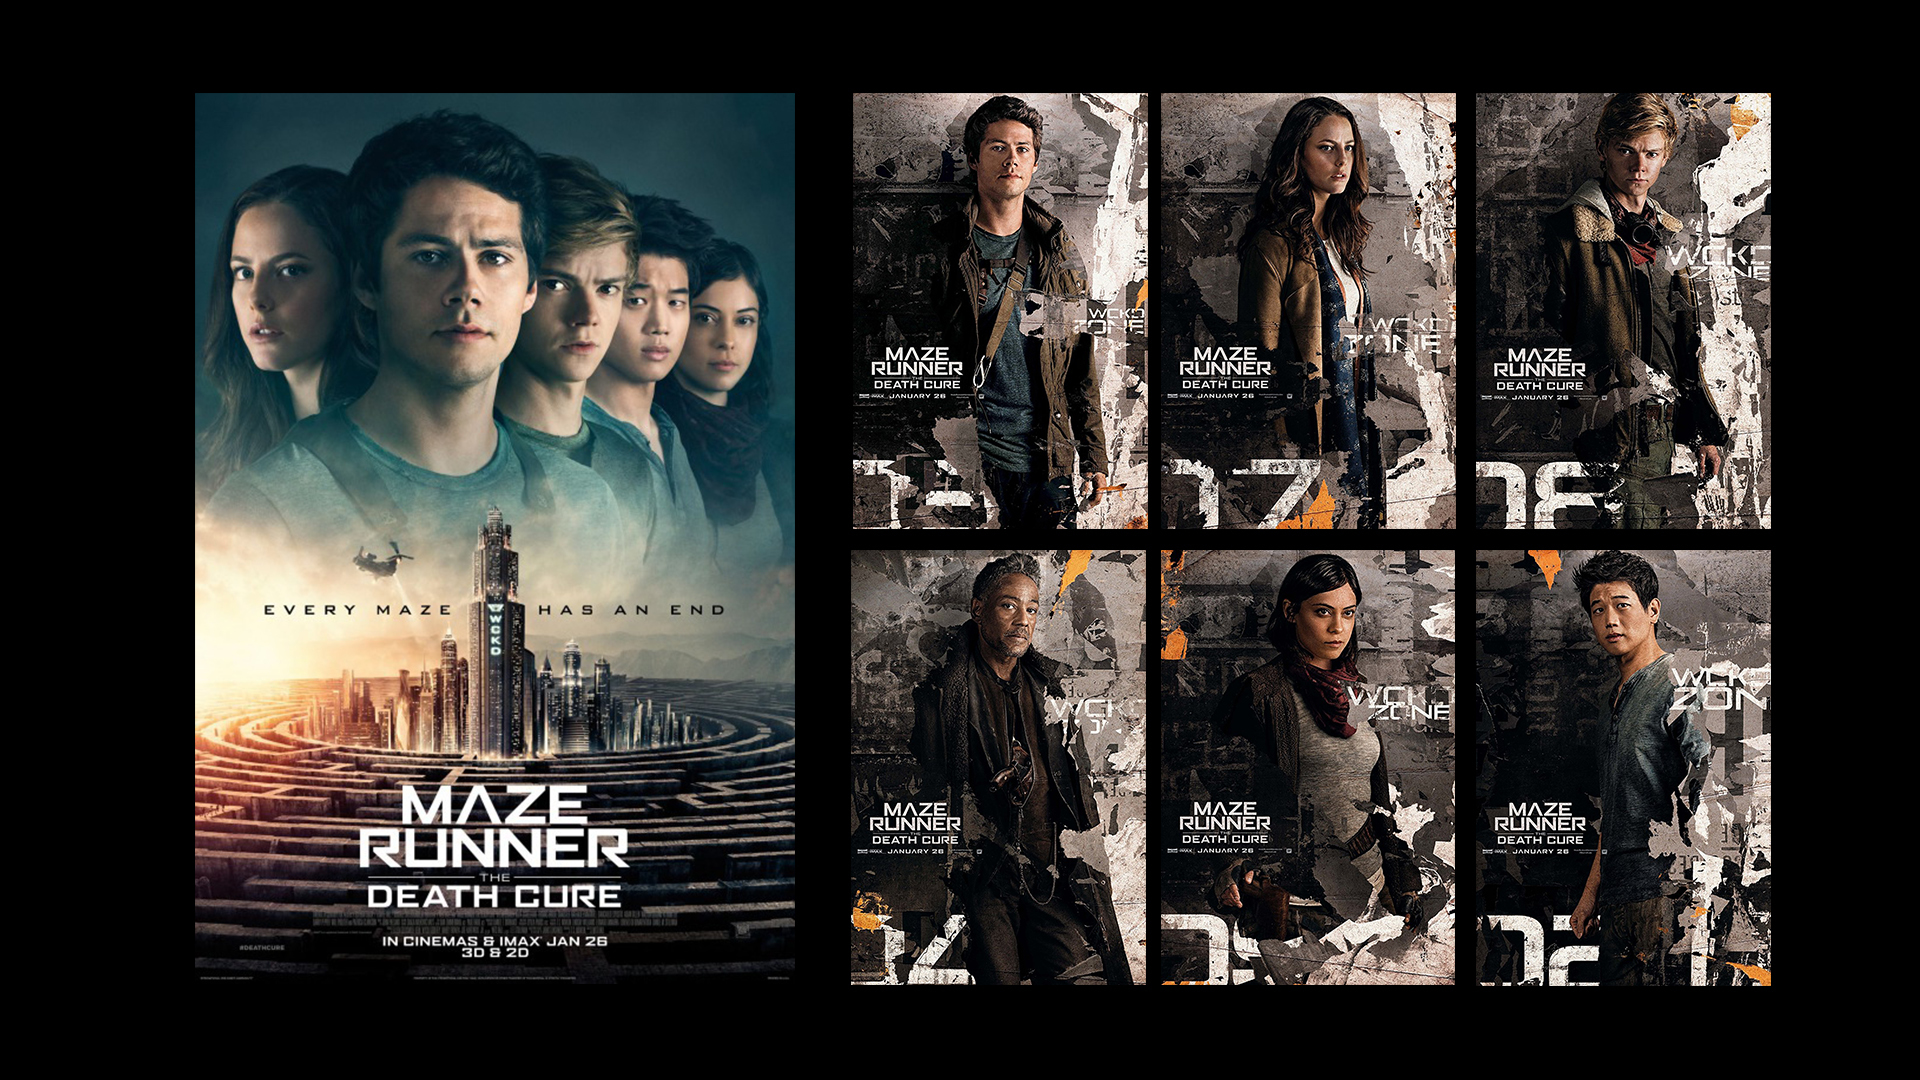 Latest Specials -  Maze Runner: The Death Cure